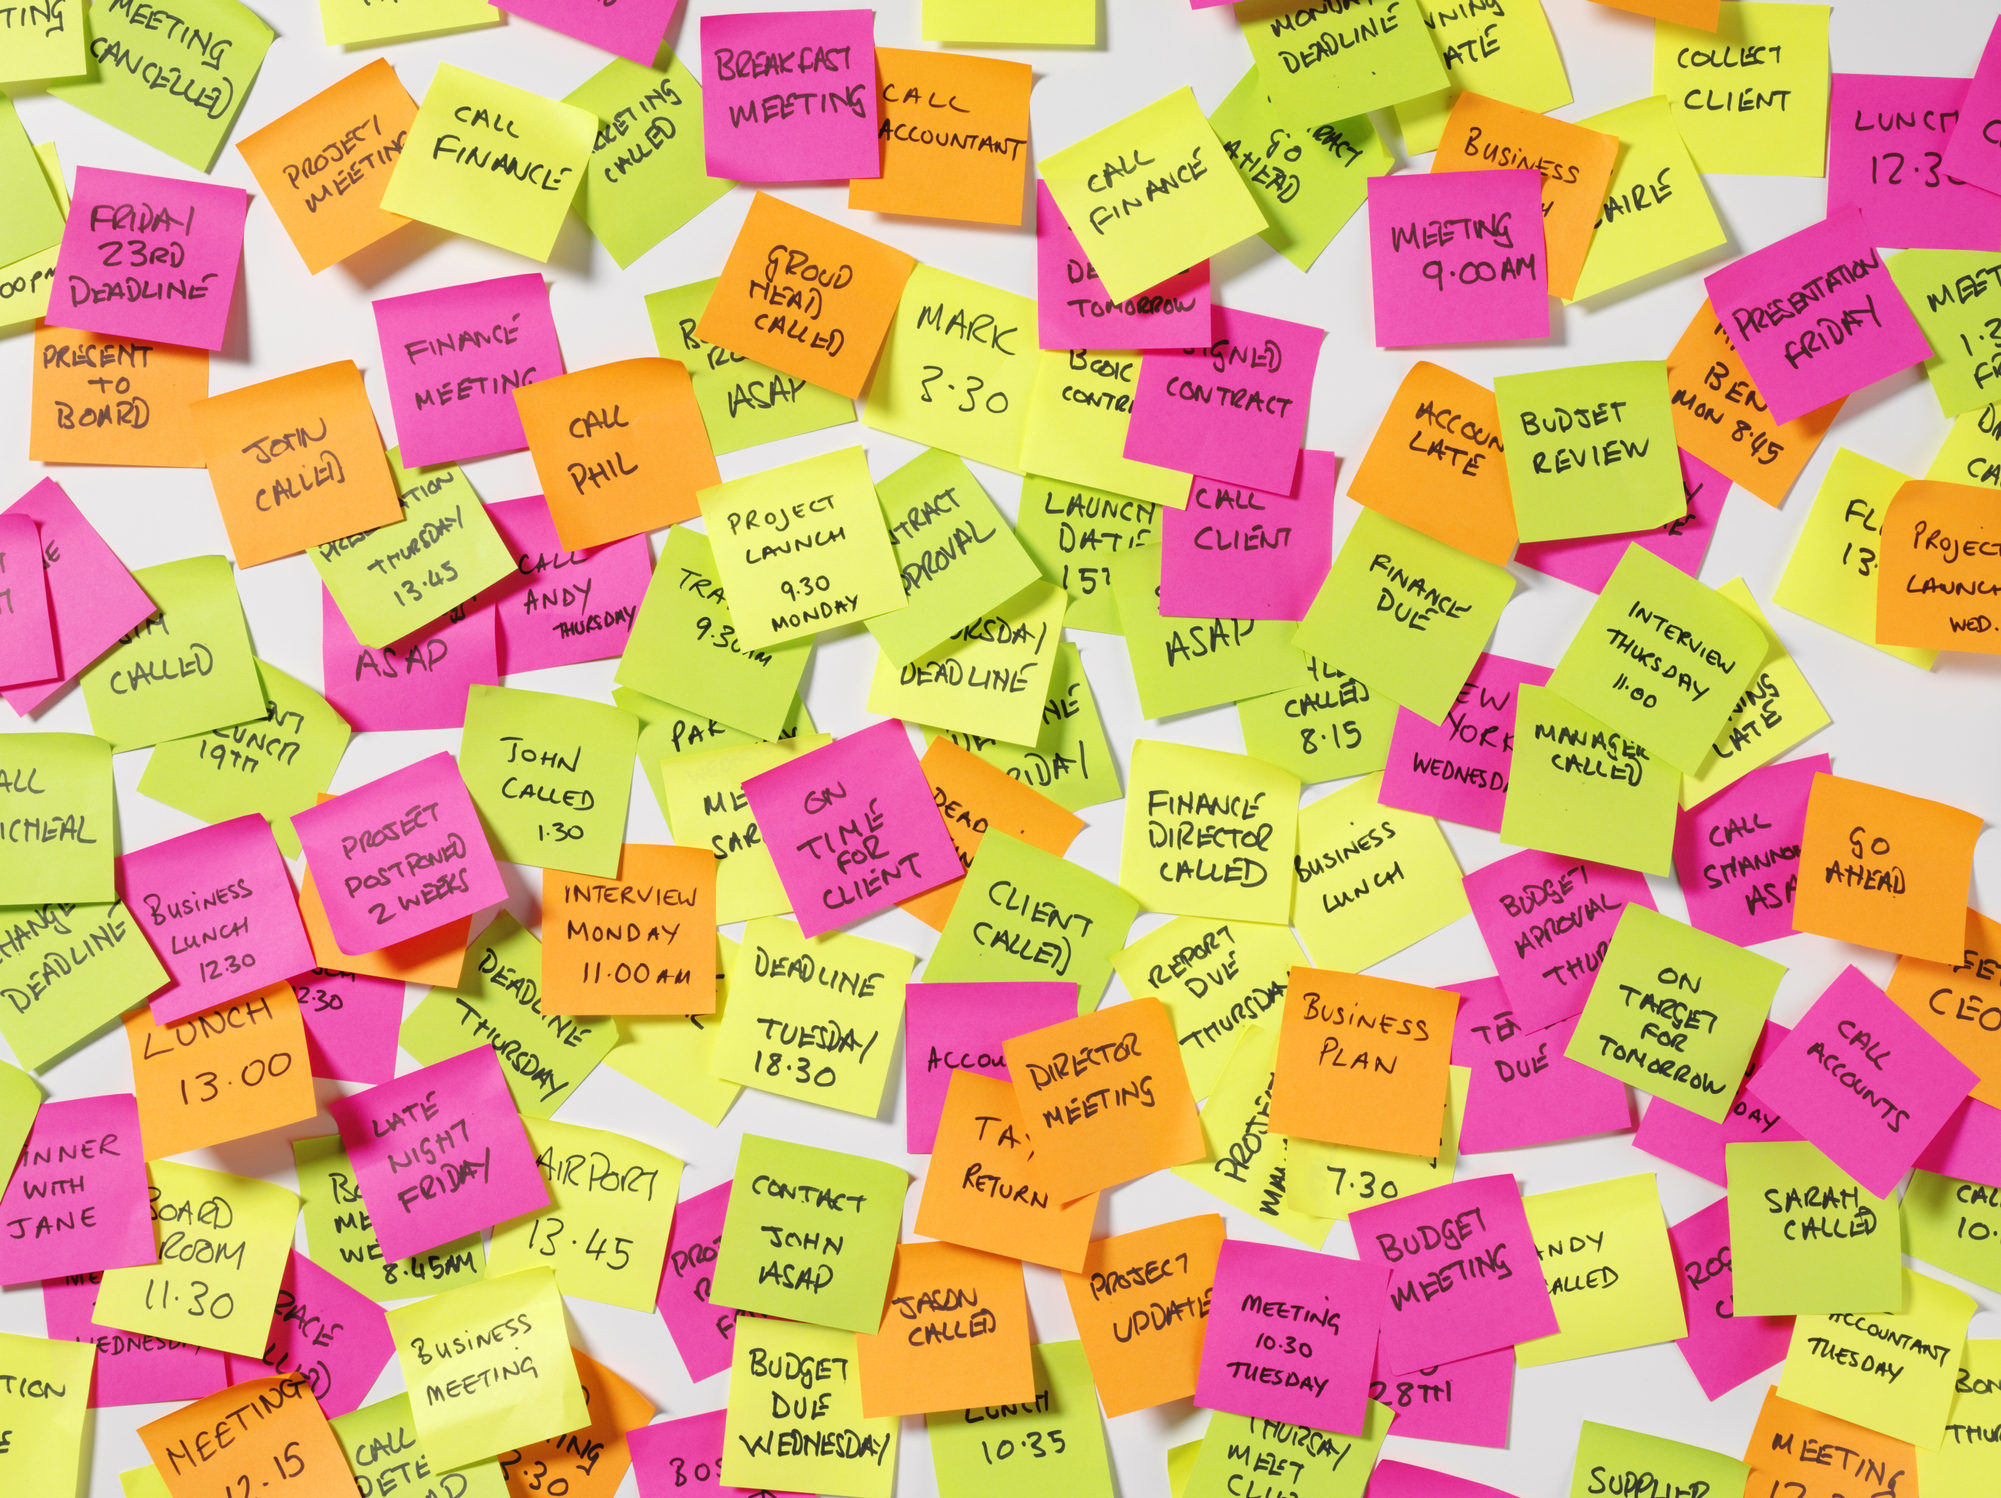 Post It Wall_iStock-168720463.jpg